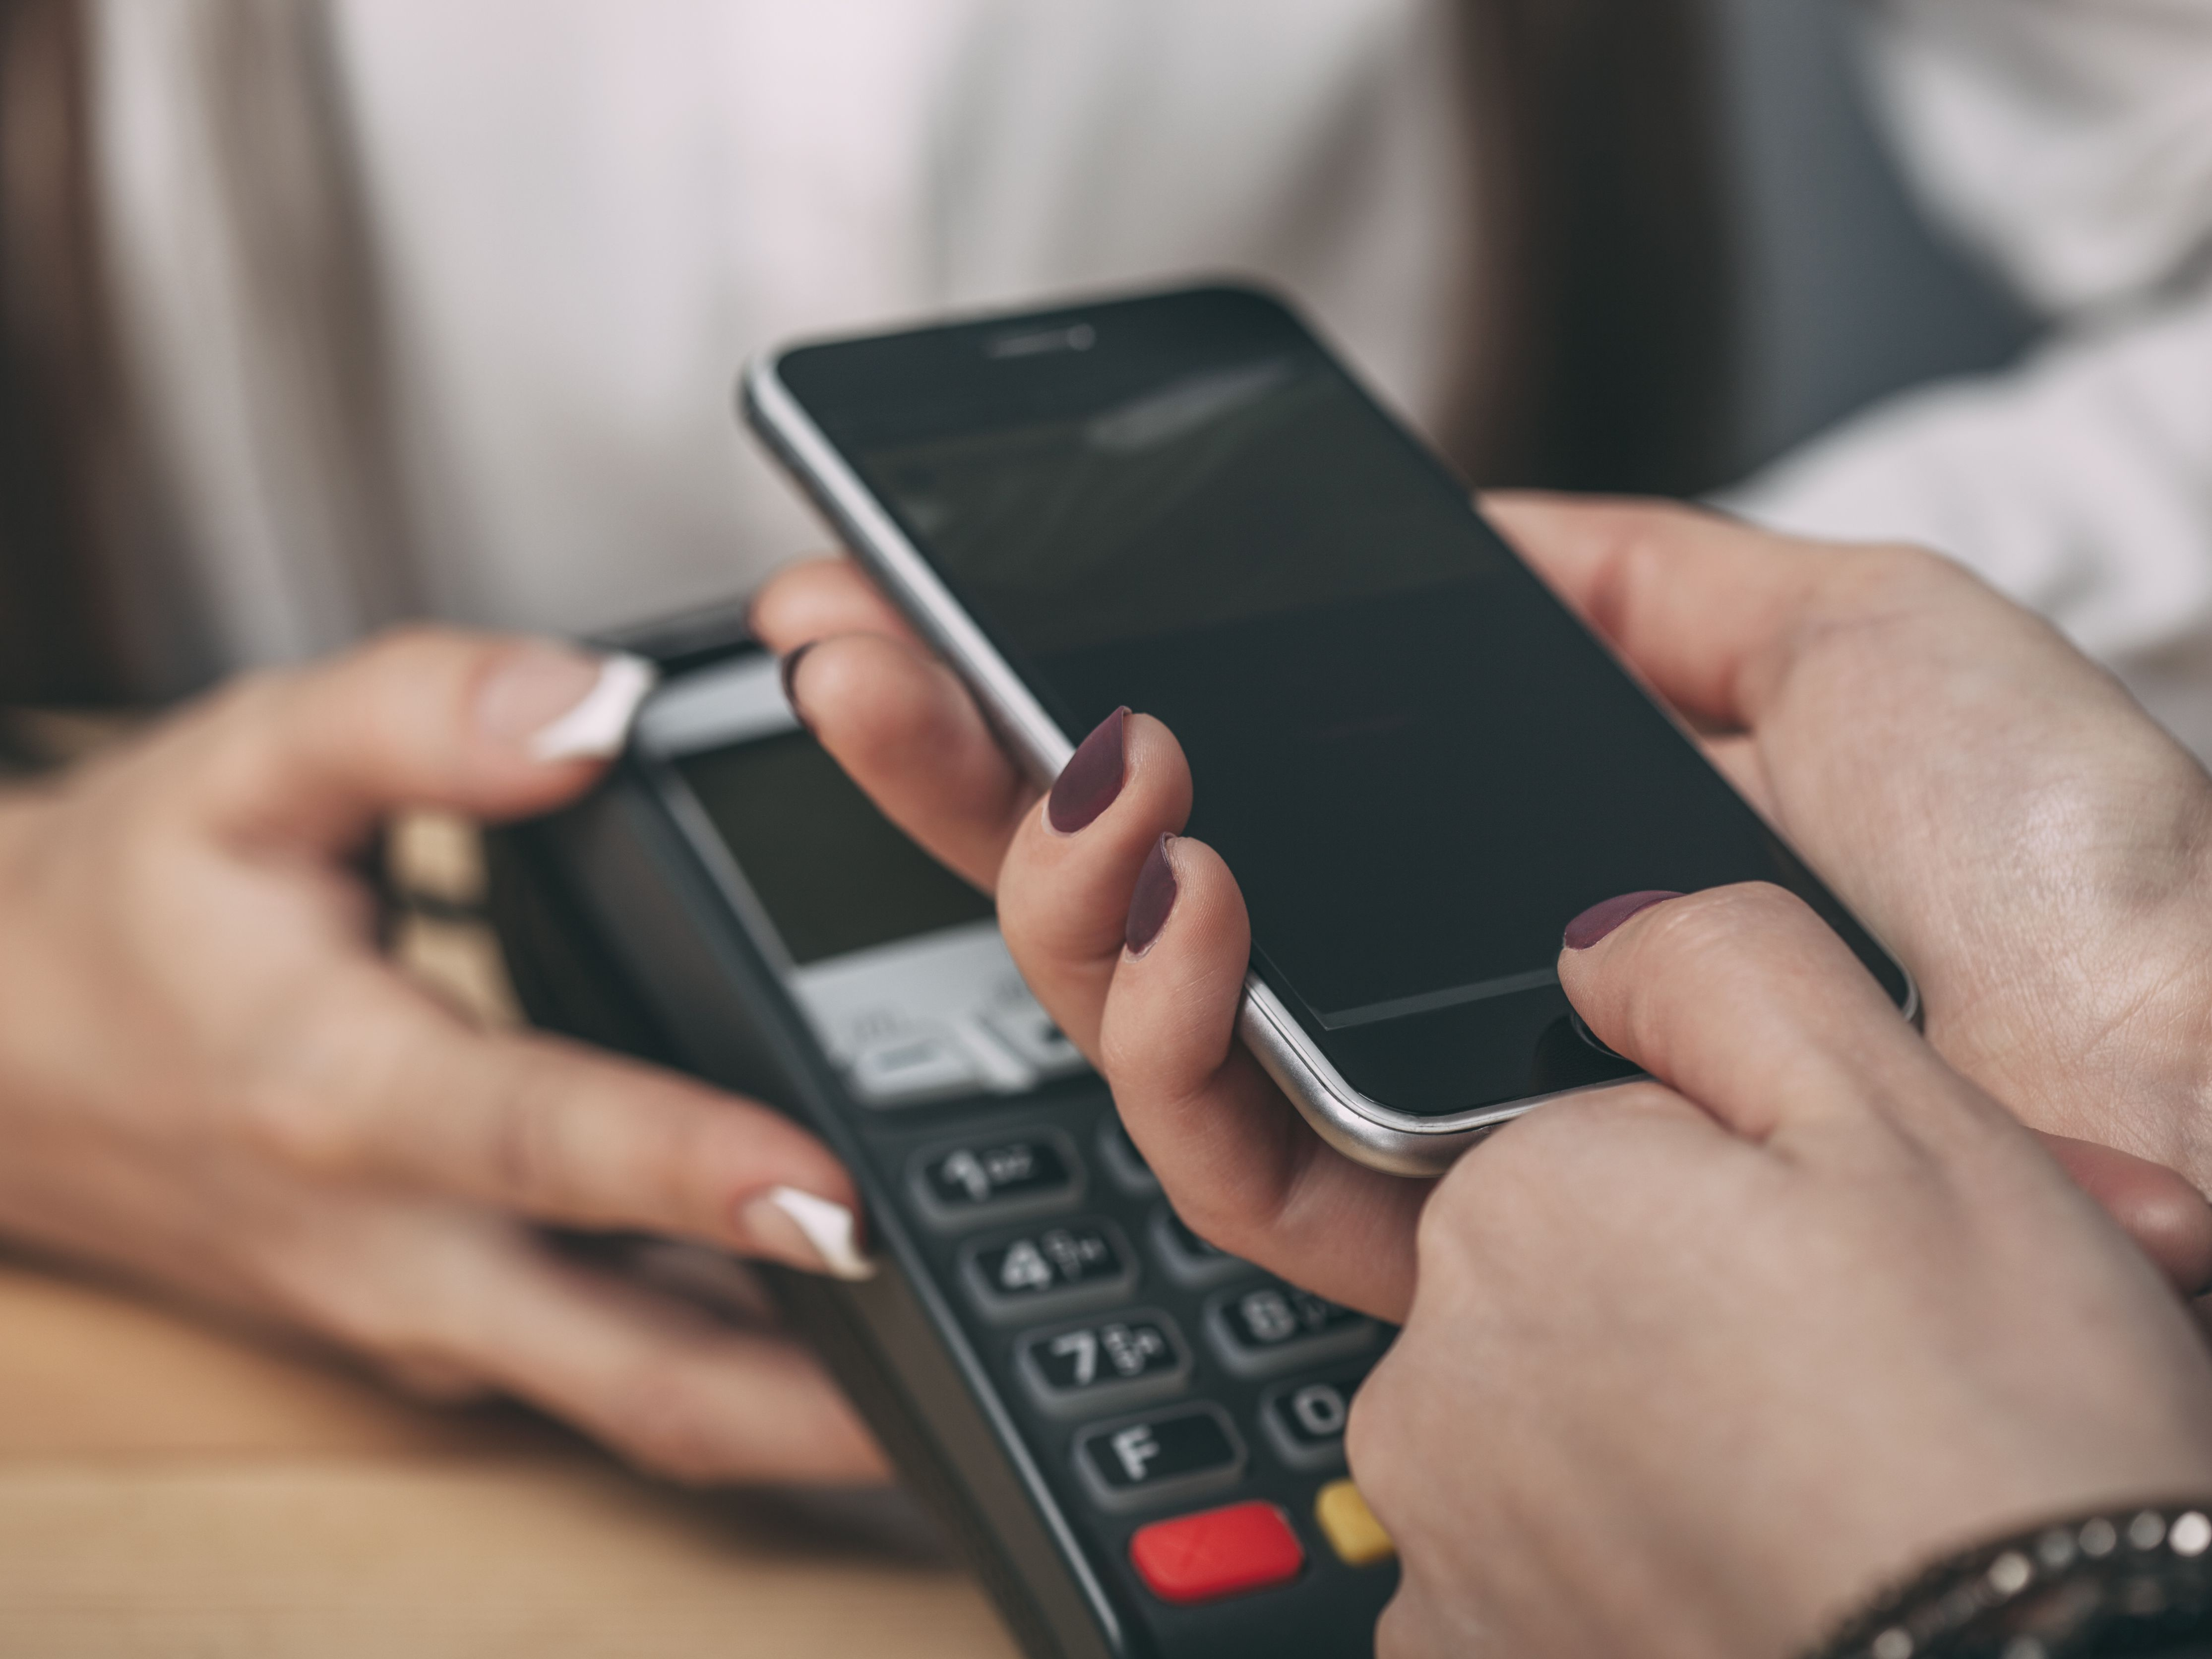 Tips for Making Safe Mobile Payments